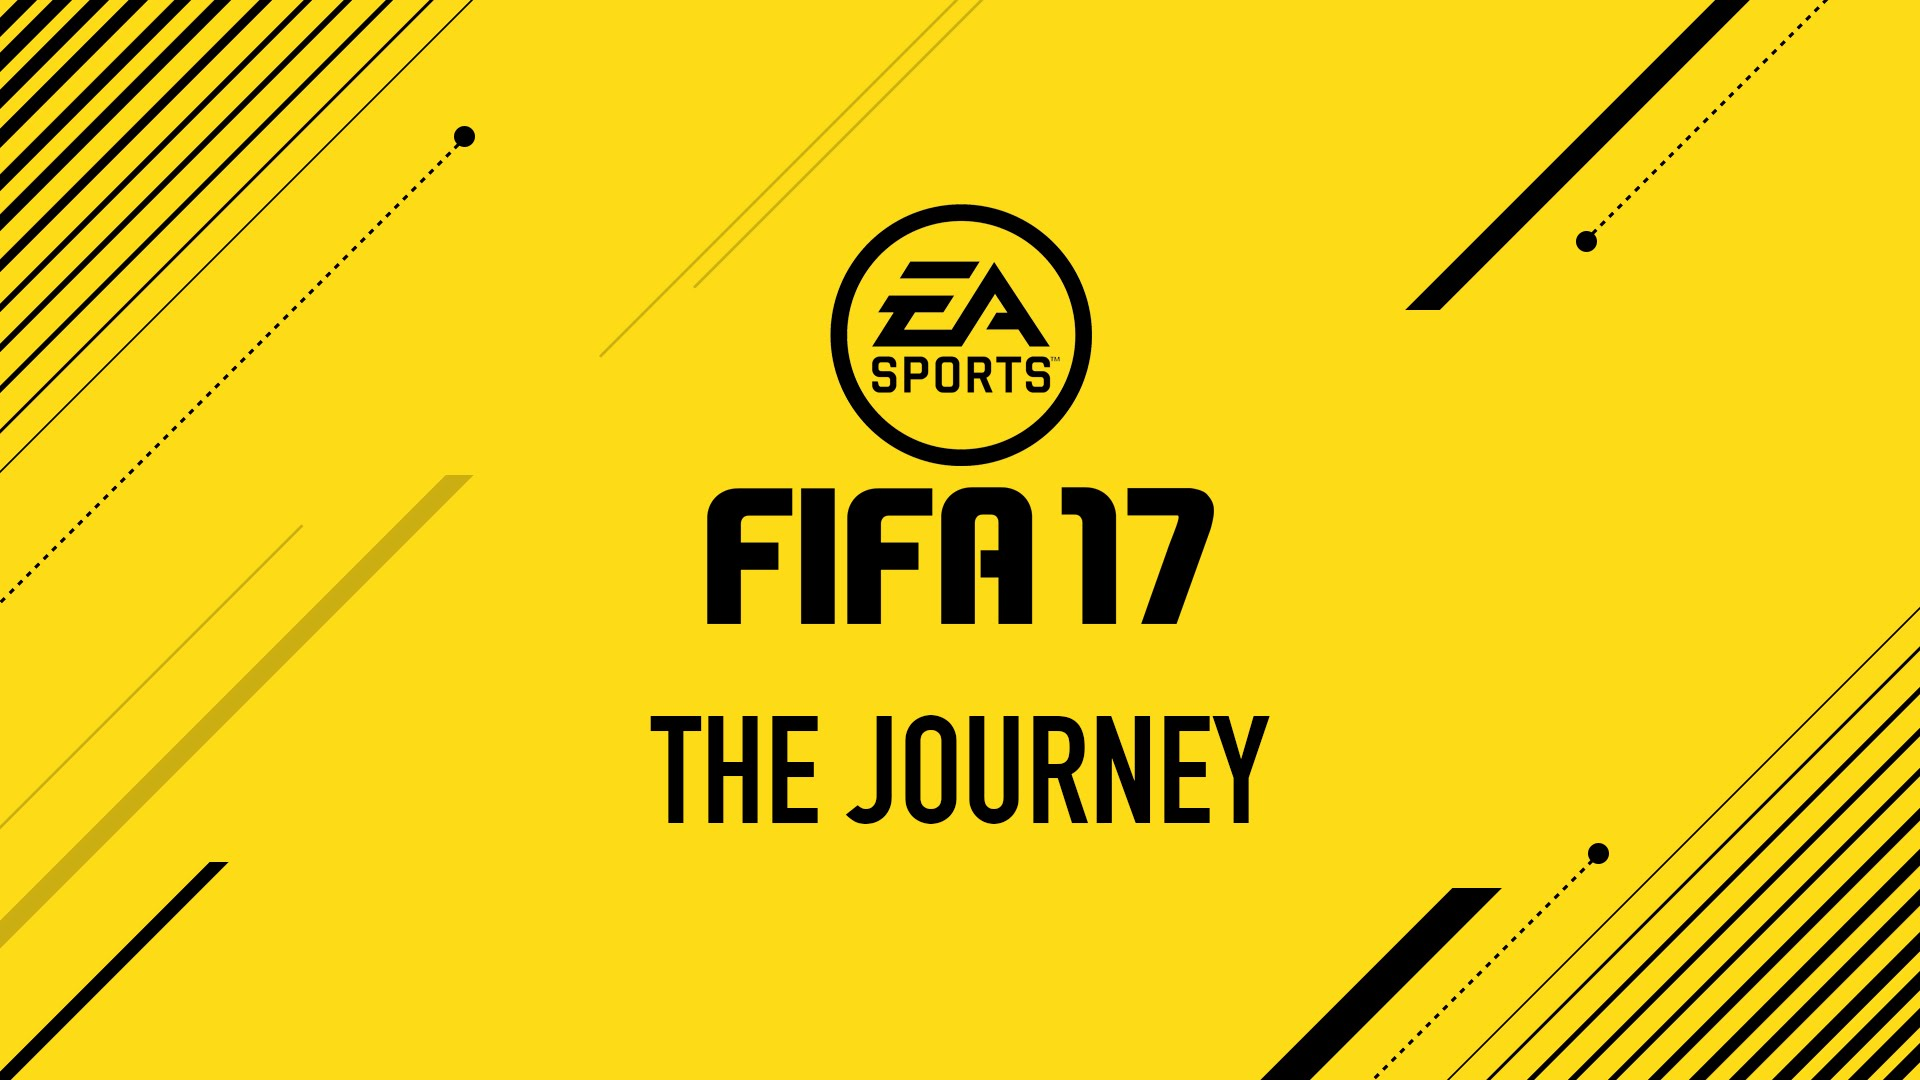 Poster for FIFA 17 the Journey